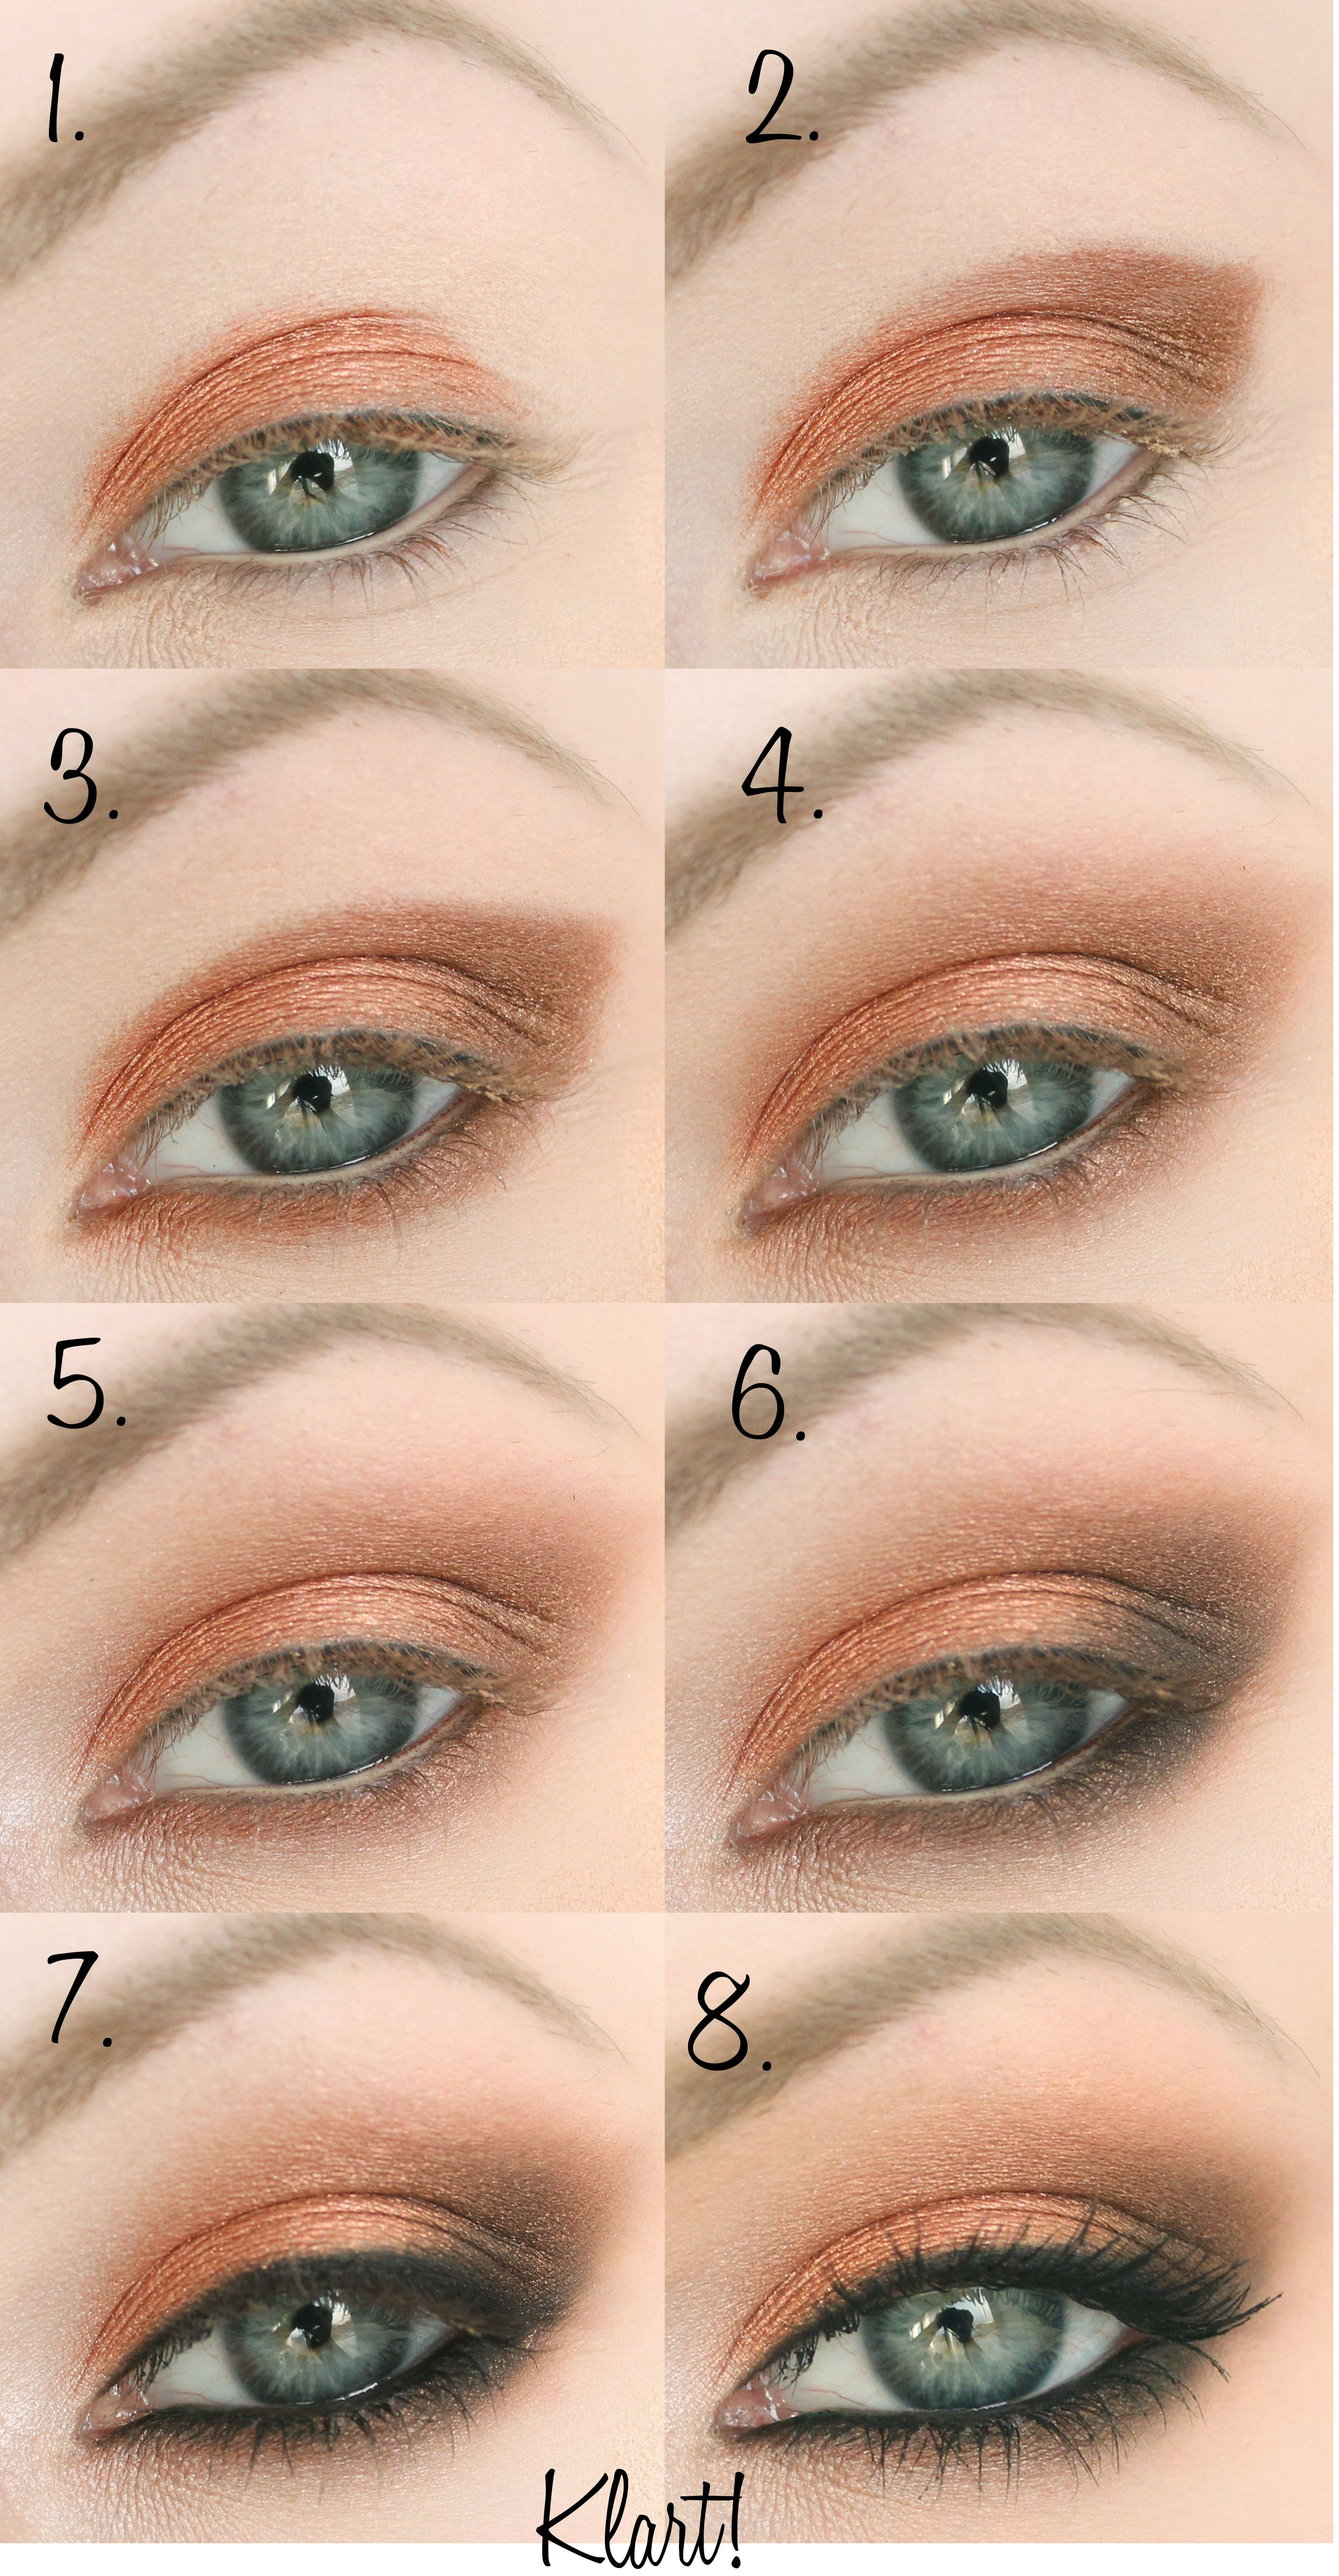 Step by step eye makeup pics my collection jennifer lawrence step by step eye copper eye makeup tutorial for beginners baditri Choice Image